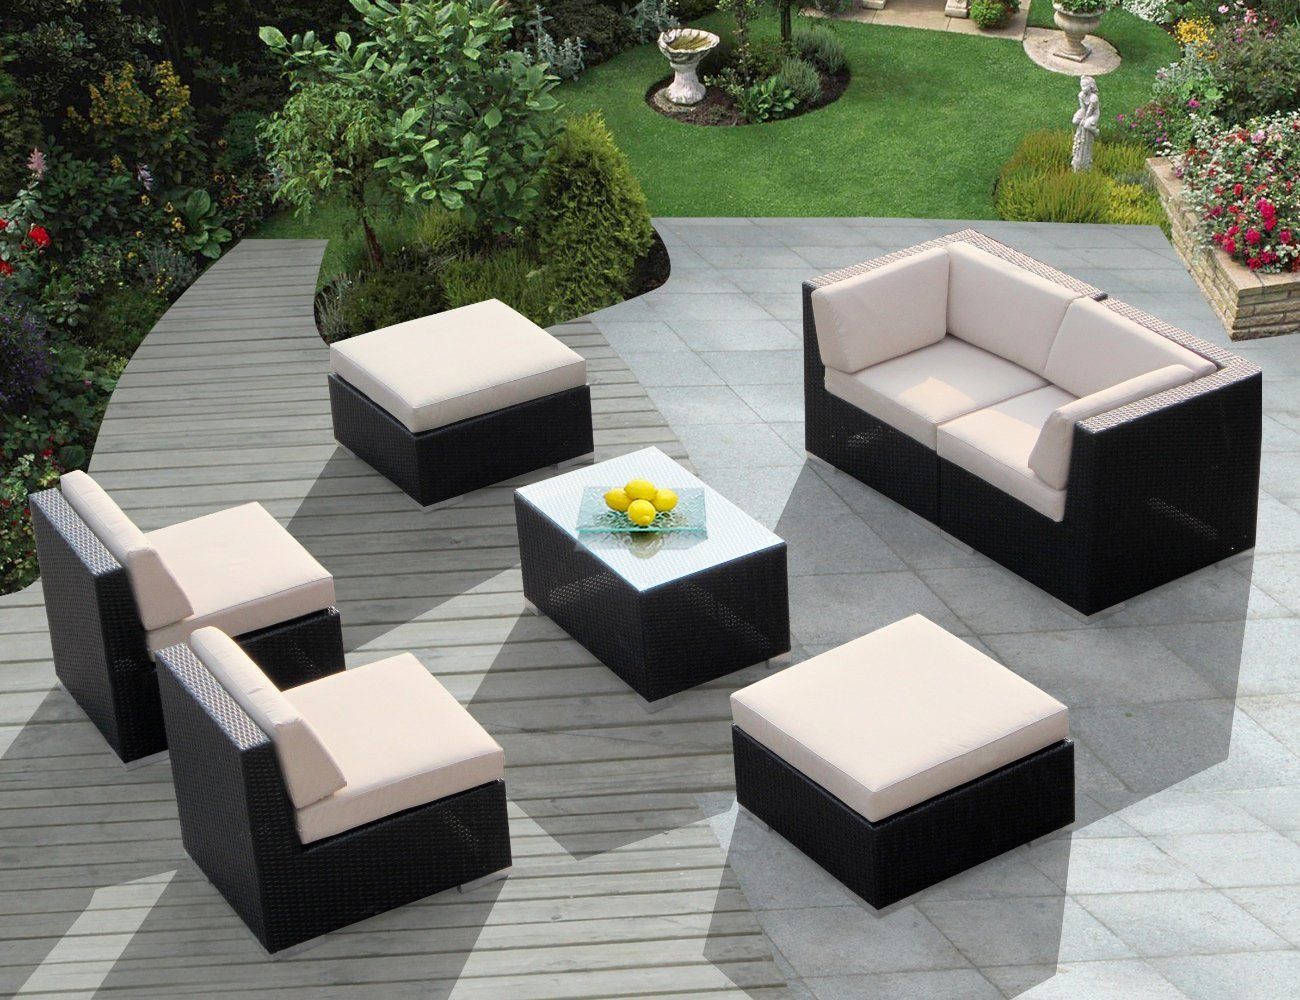 Strathwood outdoor patio furniture buy cheap strathwood for Best buy patio furniture